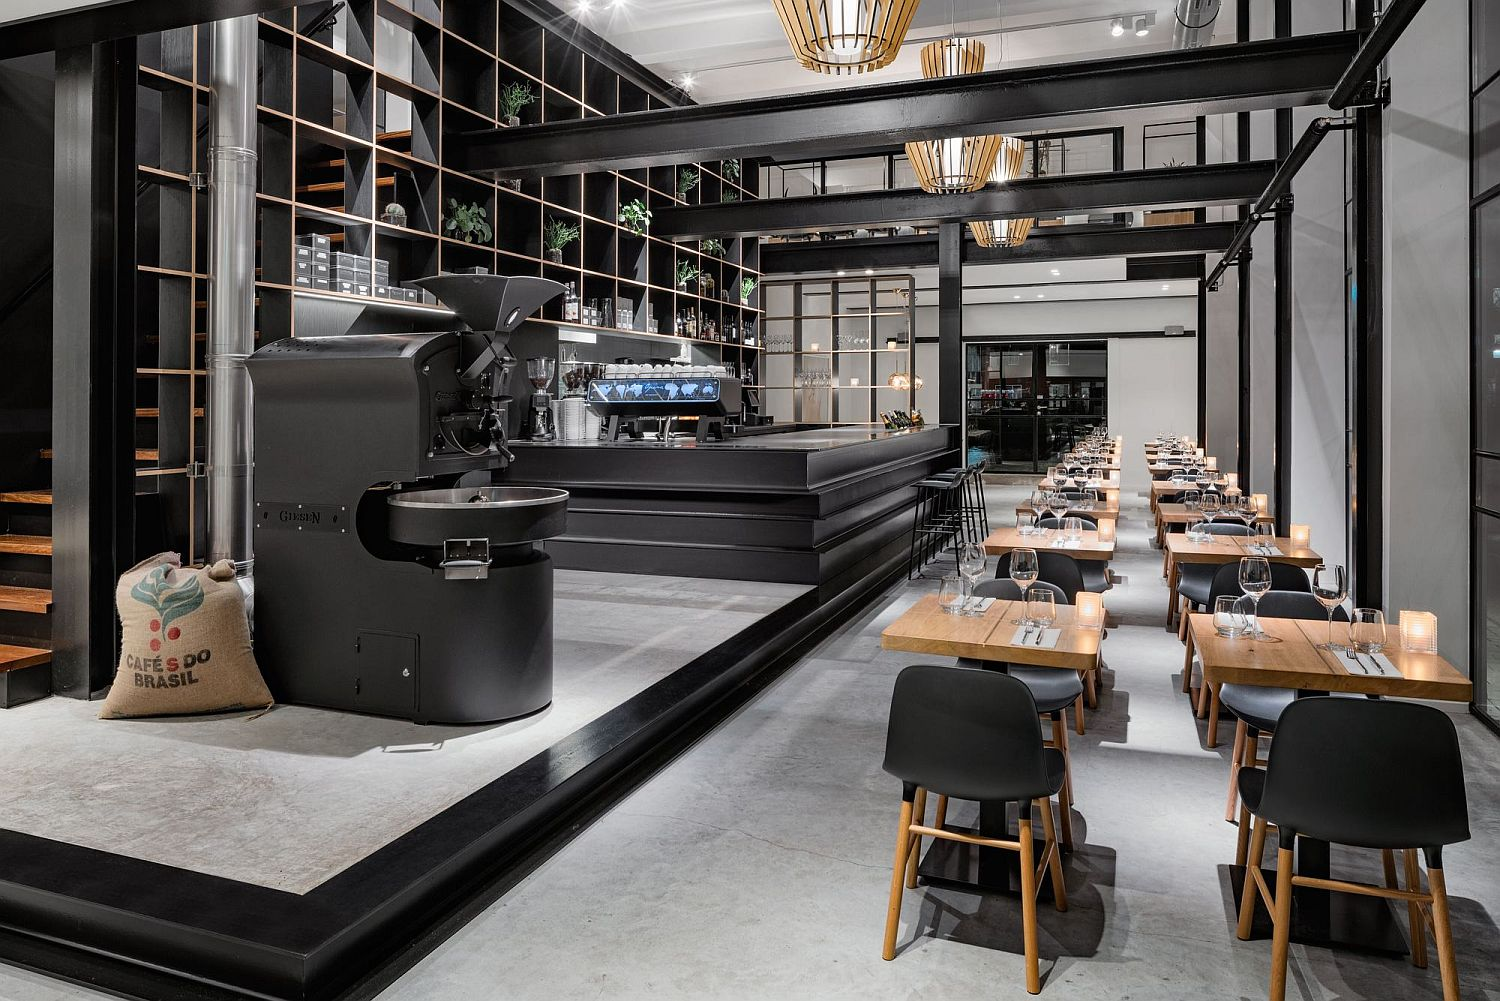 sparkling coffee bar and restaurant takes shape inside an old